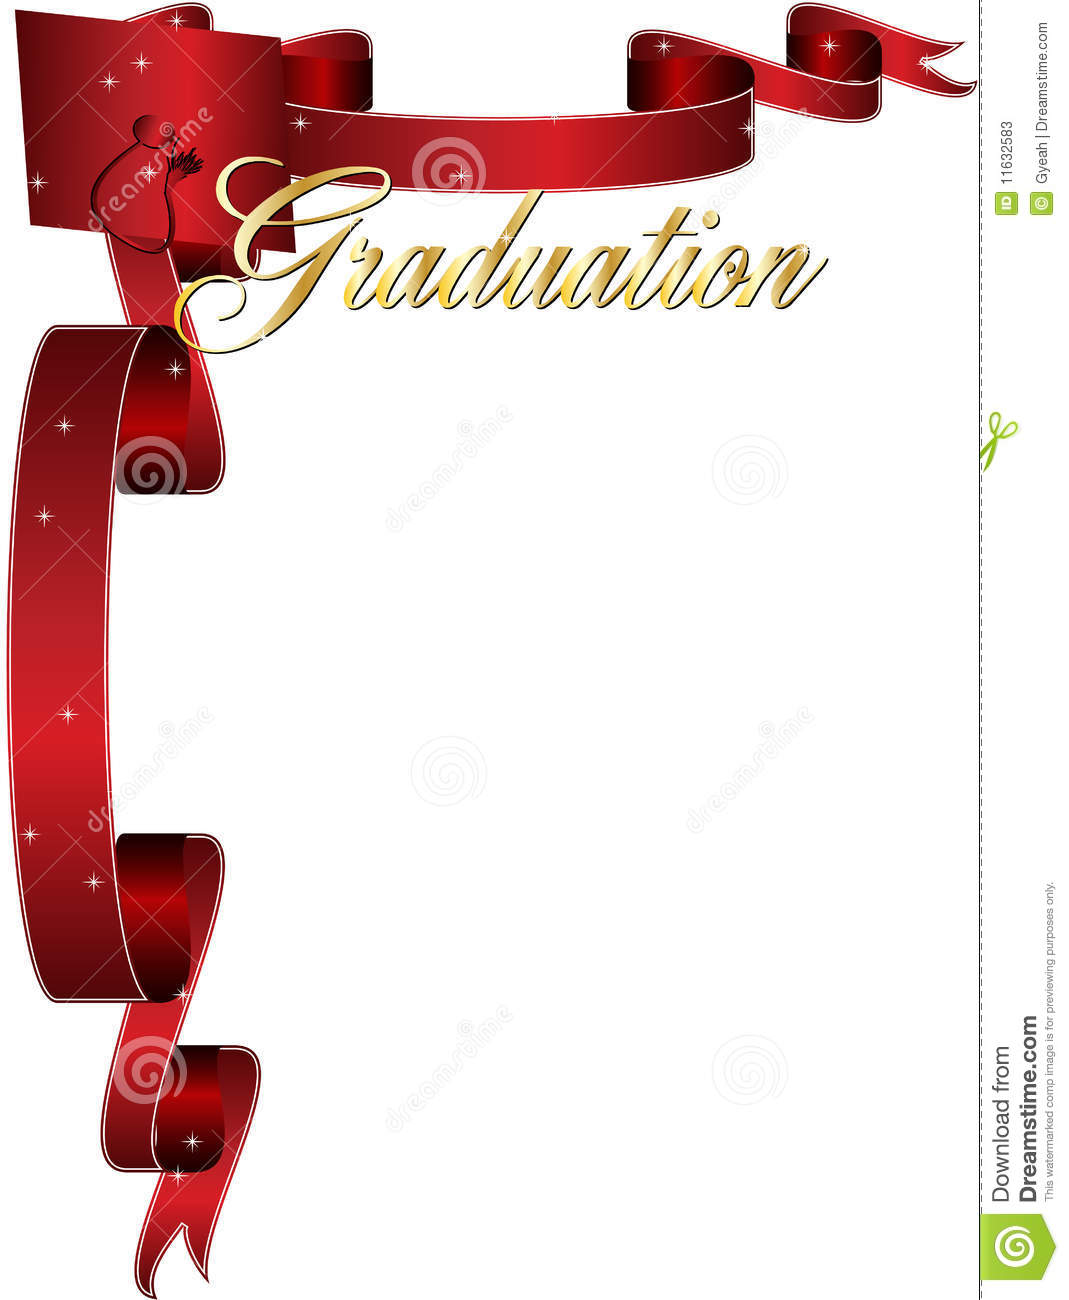 Graduation Frame Border Stock Vector Illustration Of Background